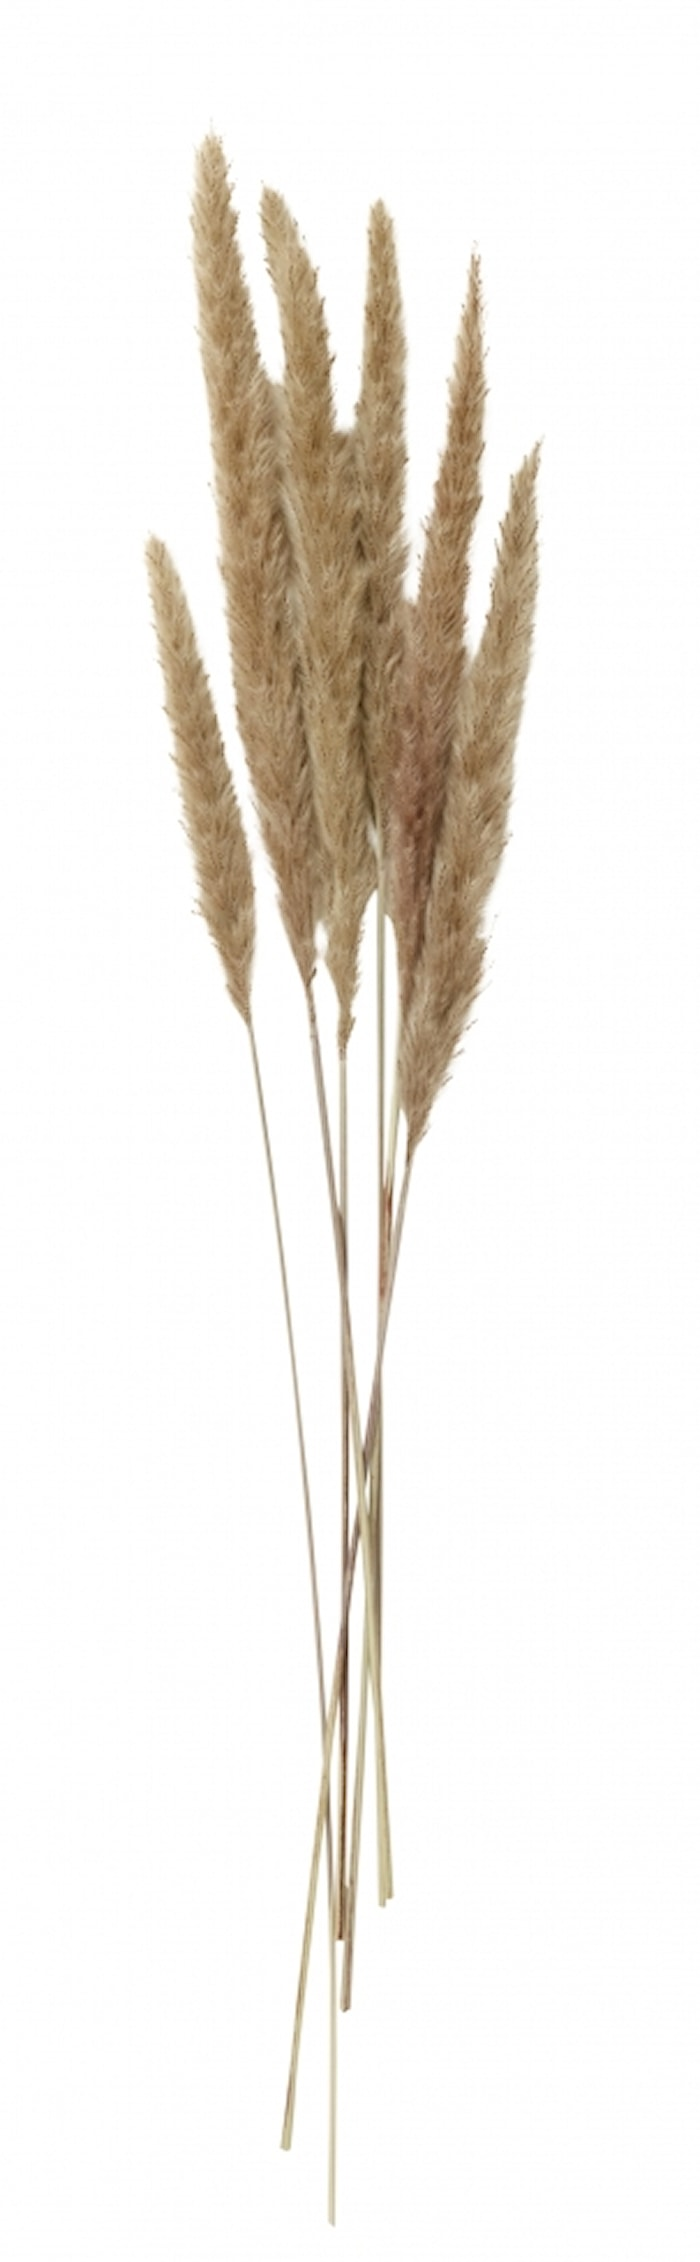 REED Blomst Natur 6 stk